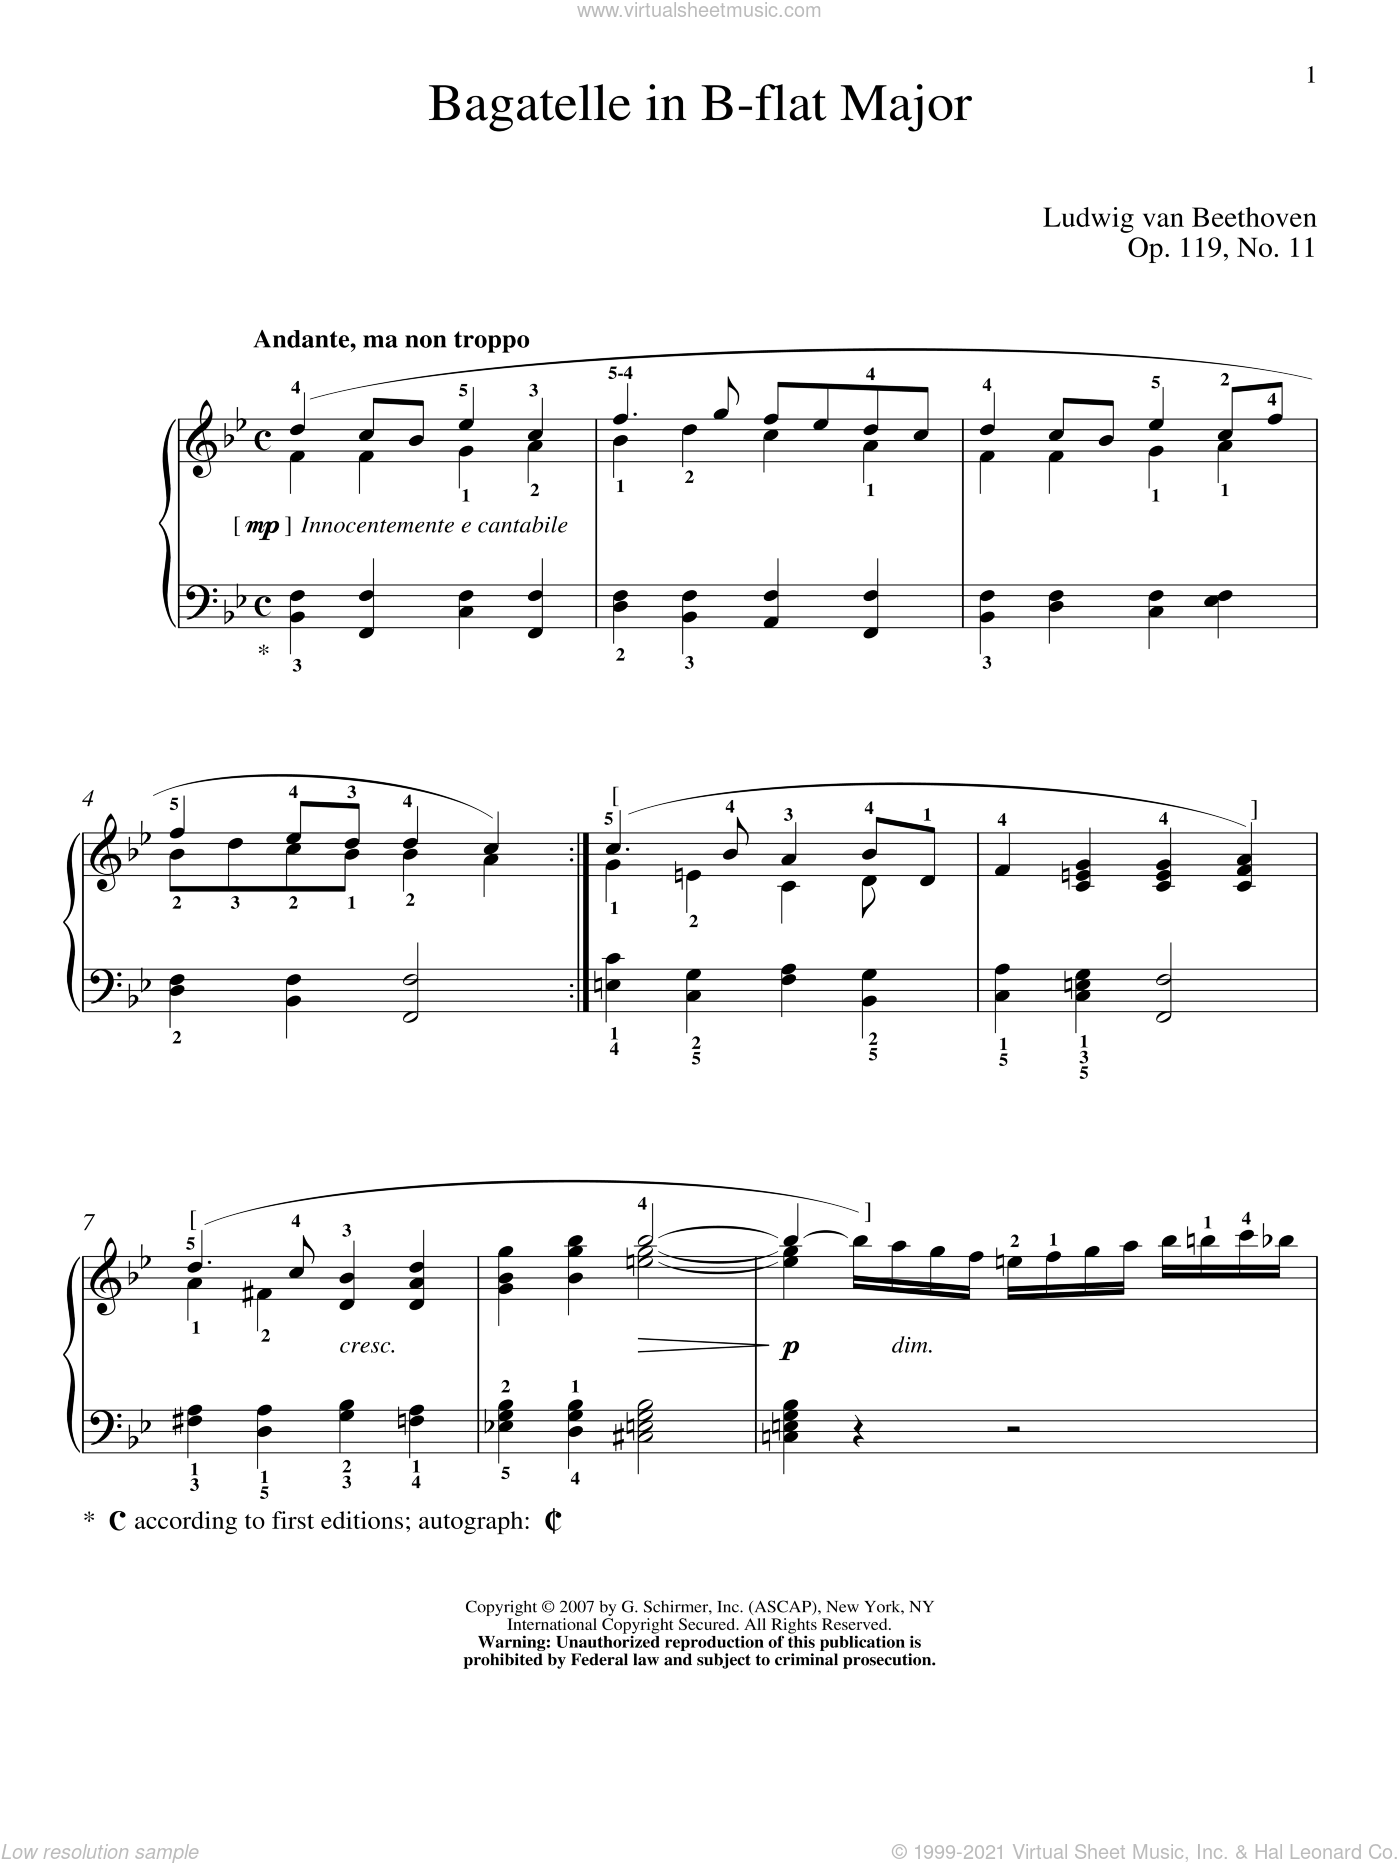 Bagatelle In B-flat Major, Op. 119, No. 11 sheet music for piano solo by Ludwig van Beethoven